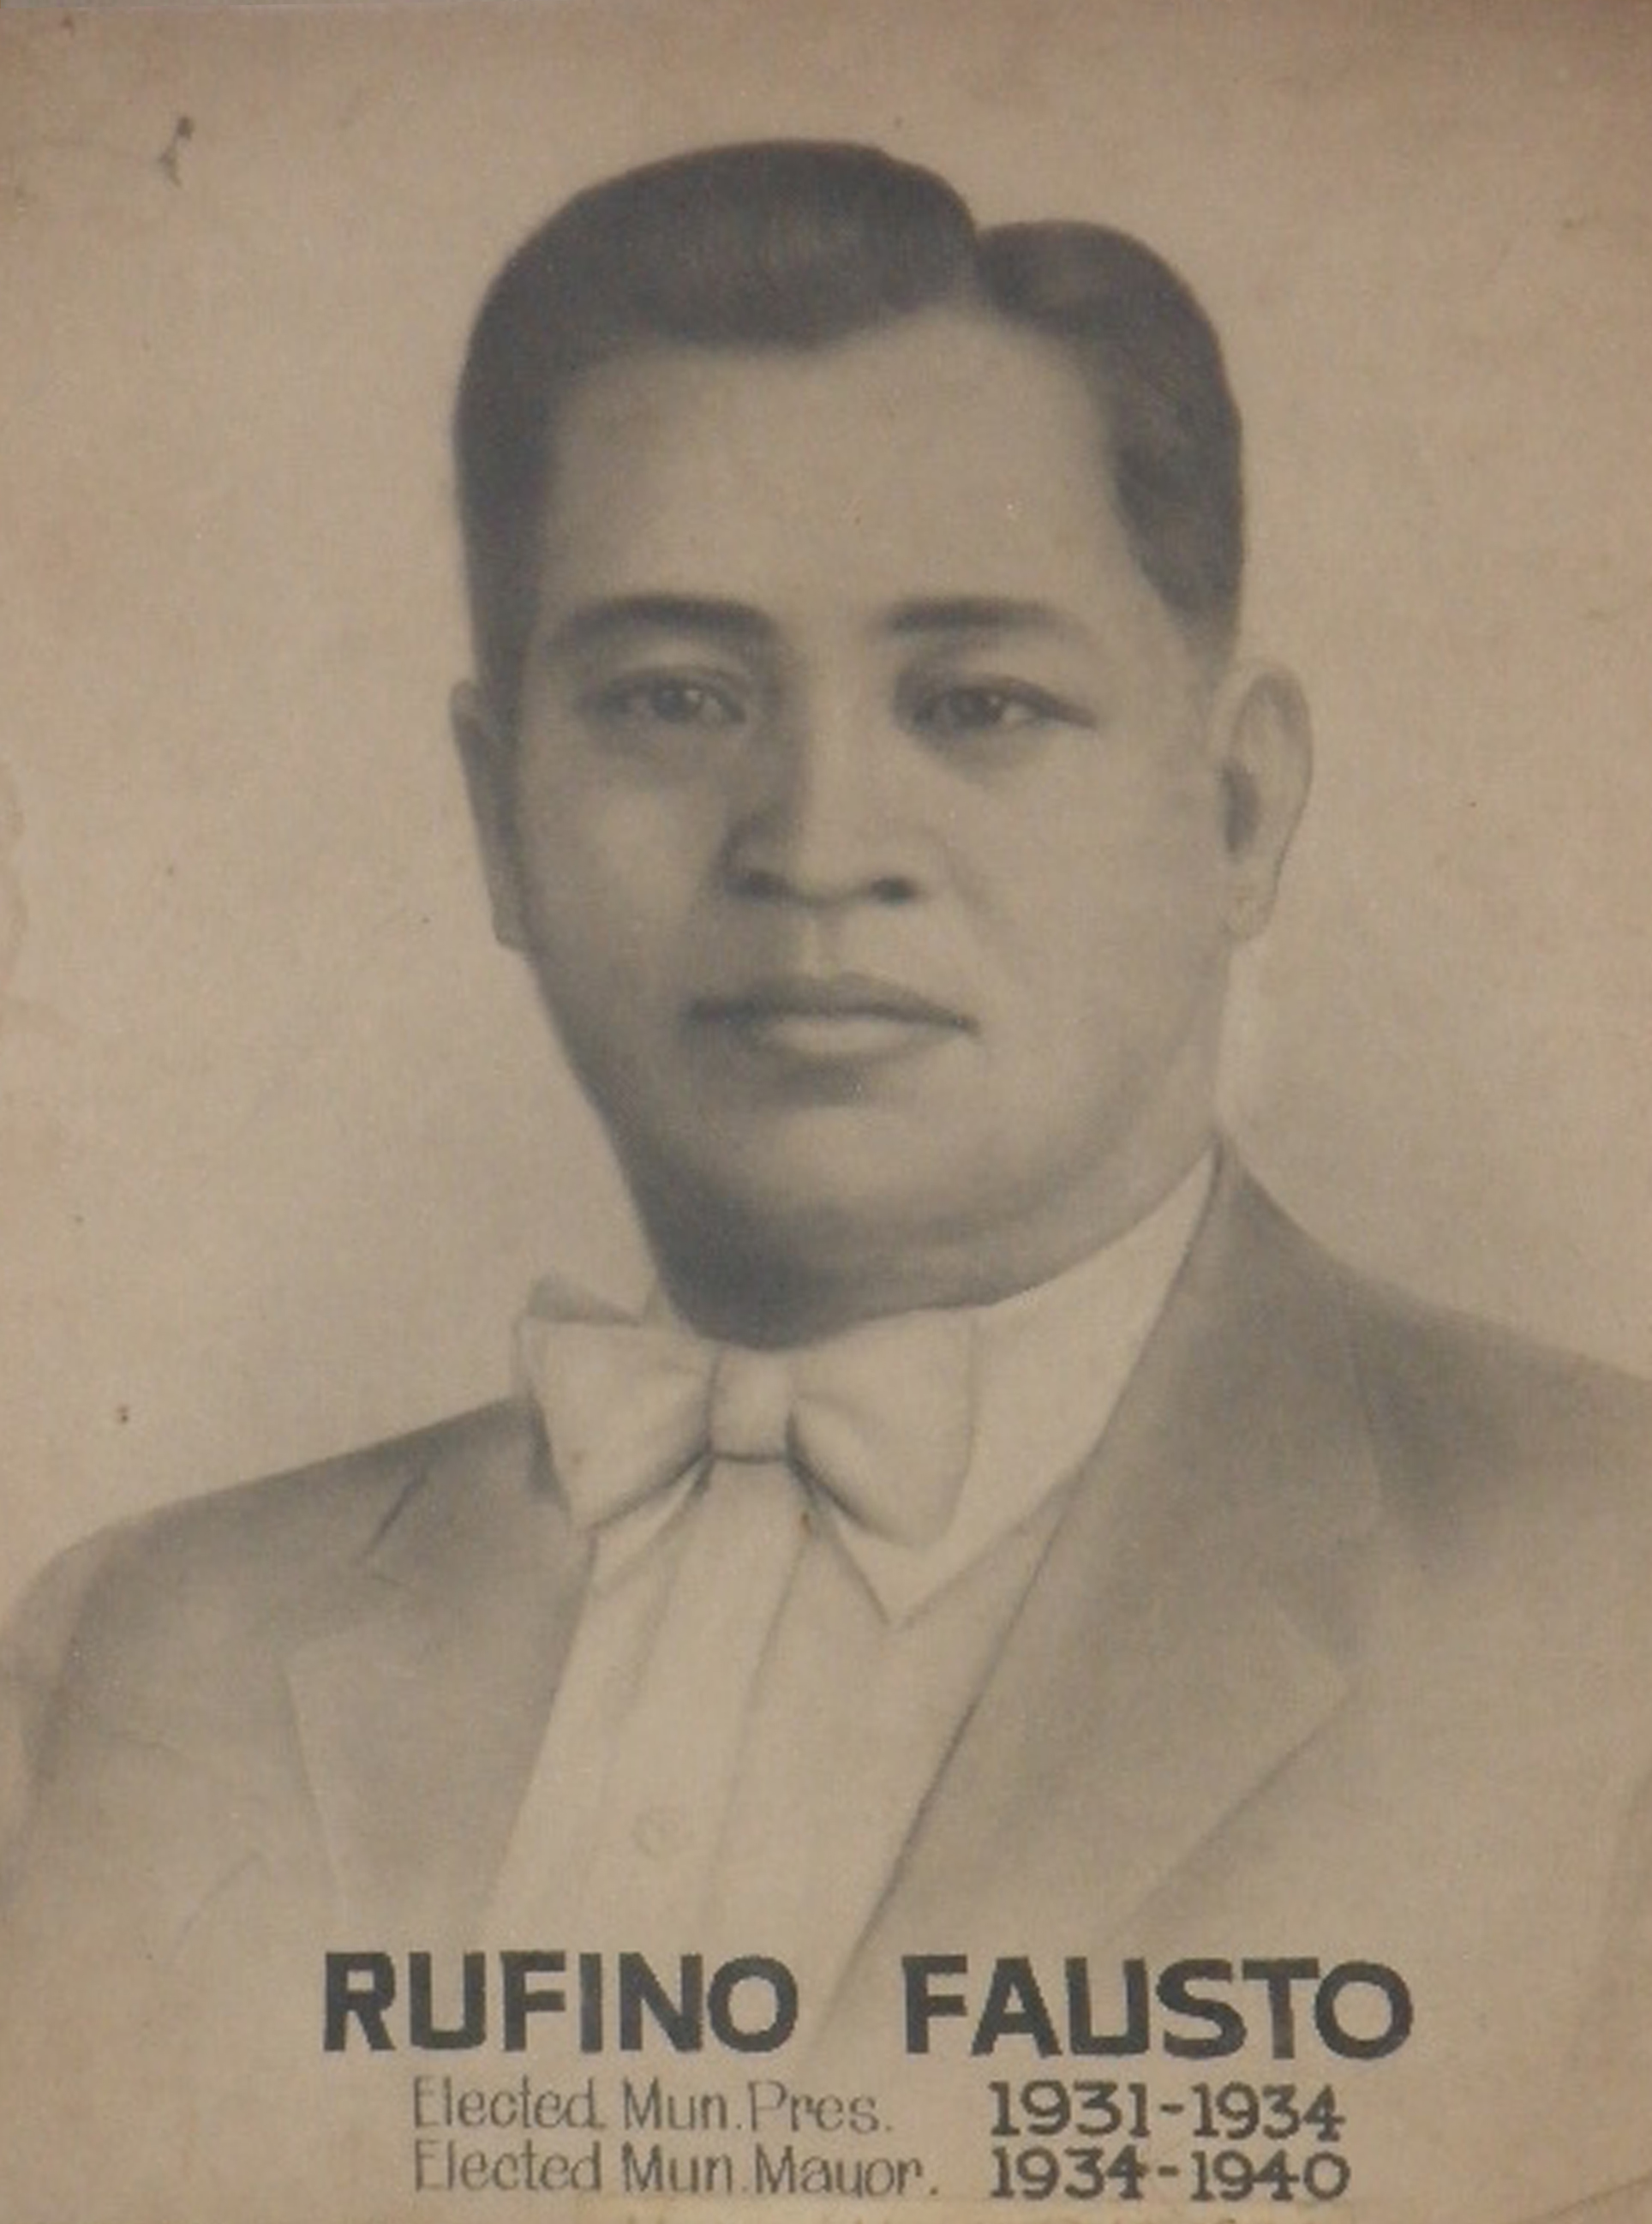 Mayor Rufino Fausto (1931-1934)